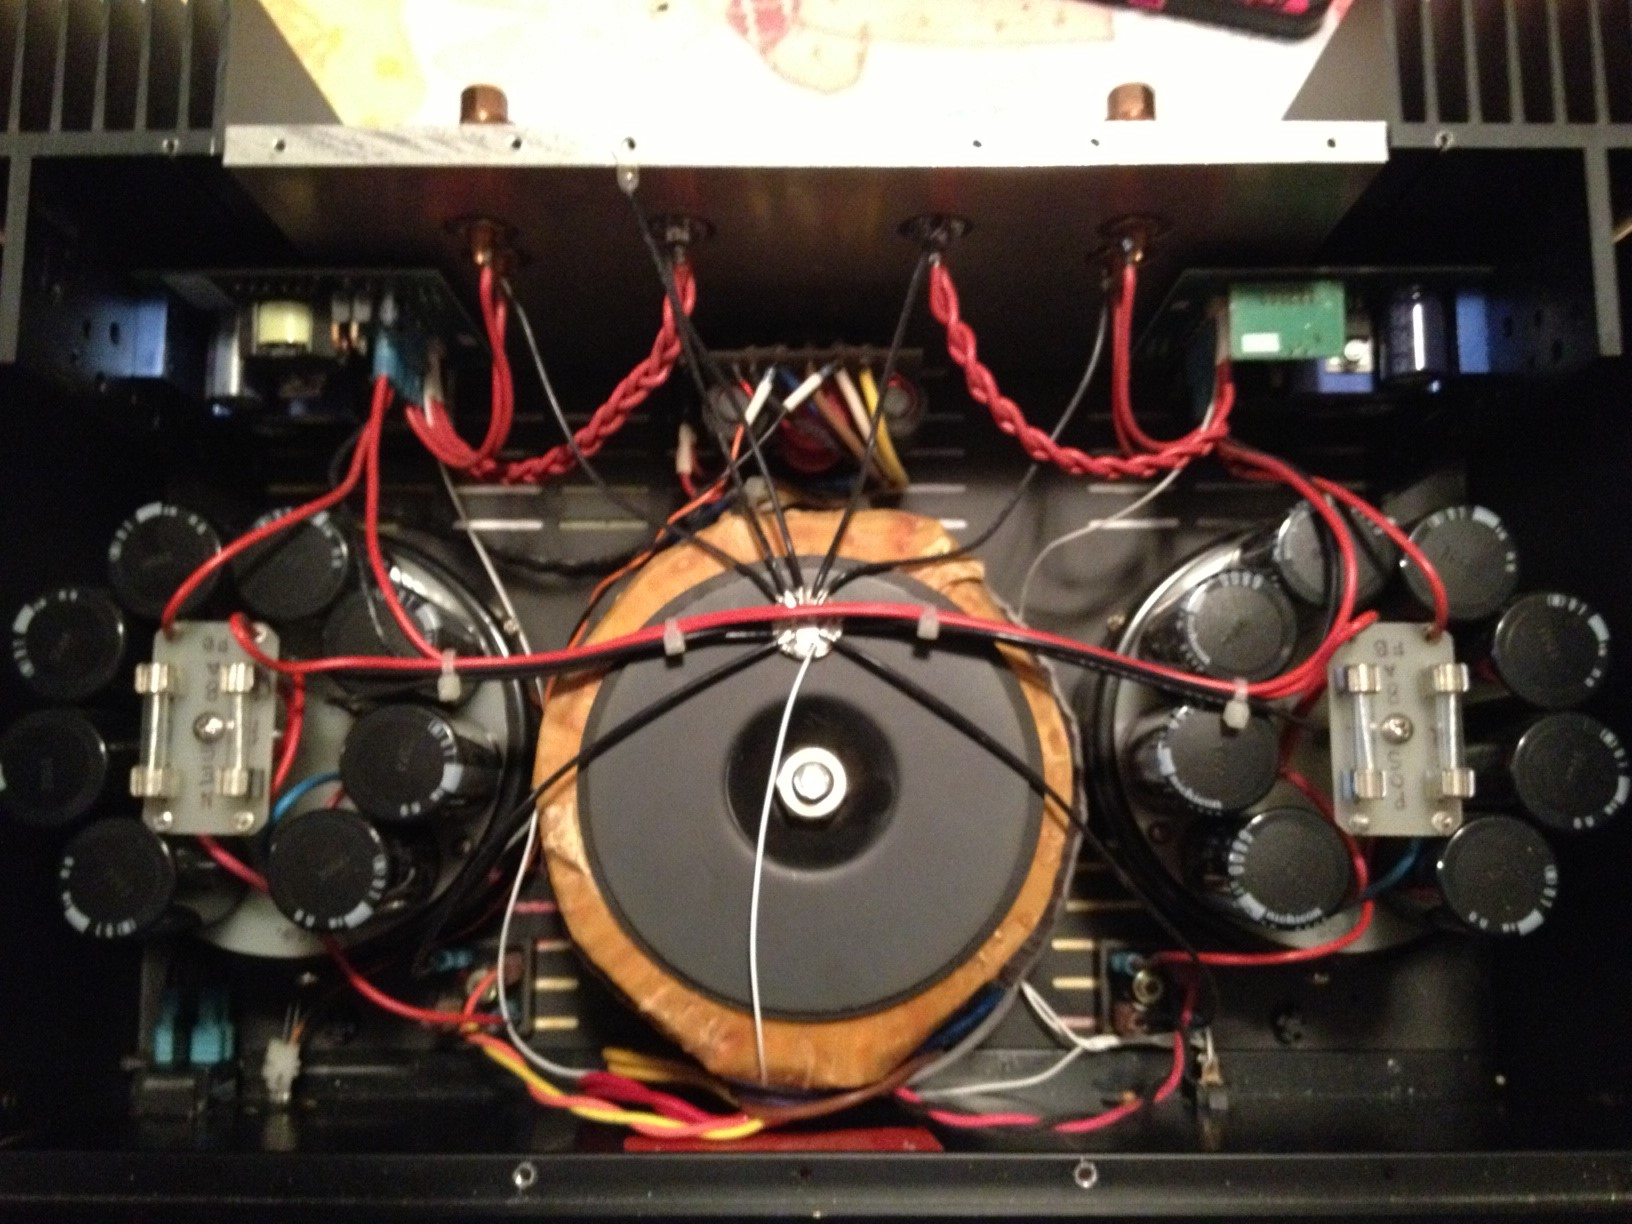 Class D Amp for 2 channel with SDA's — Polk Audio